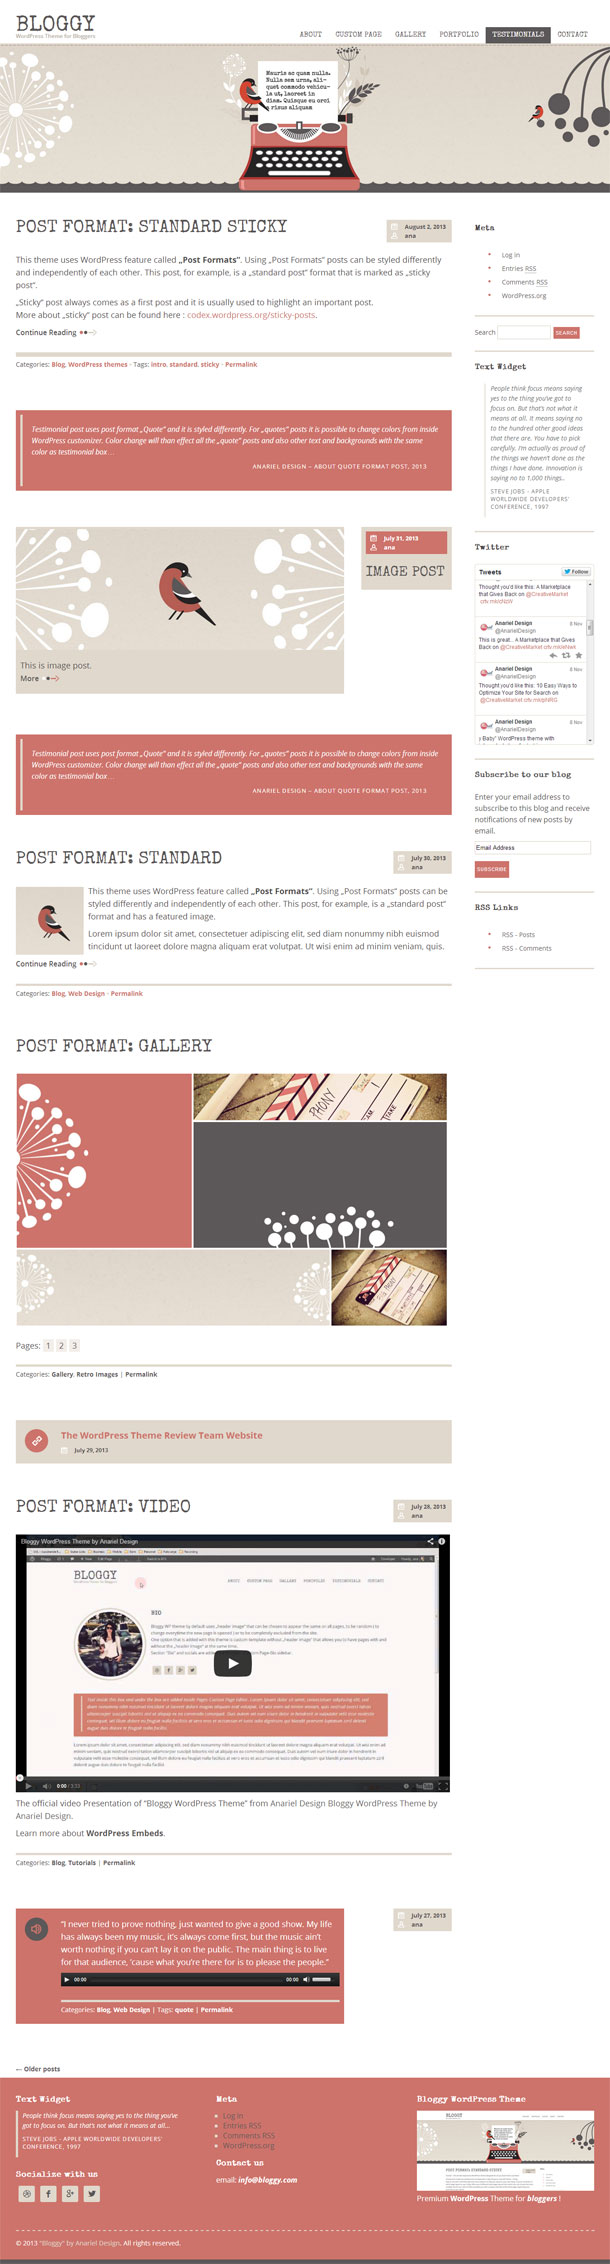 Bloggy Best Responsive Theme Image